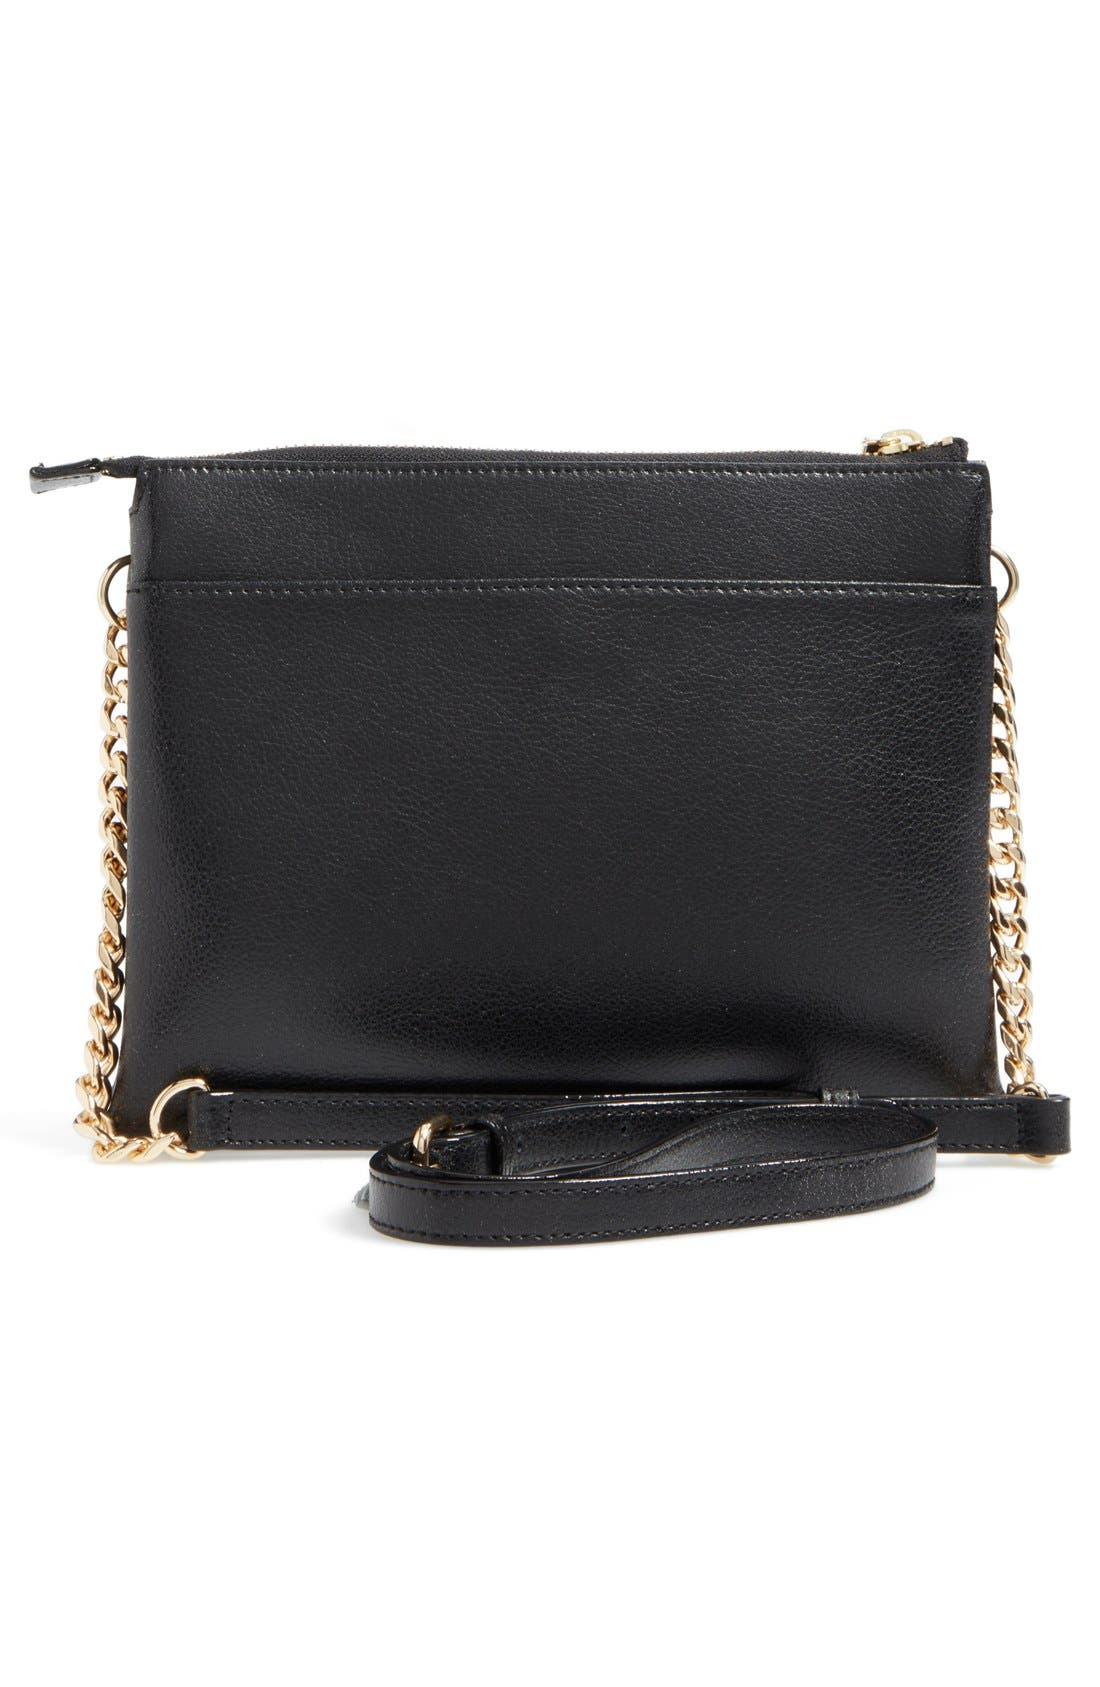 Leather Crossbody Bag,                             Alternate thumbnail 3, color,                             001